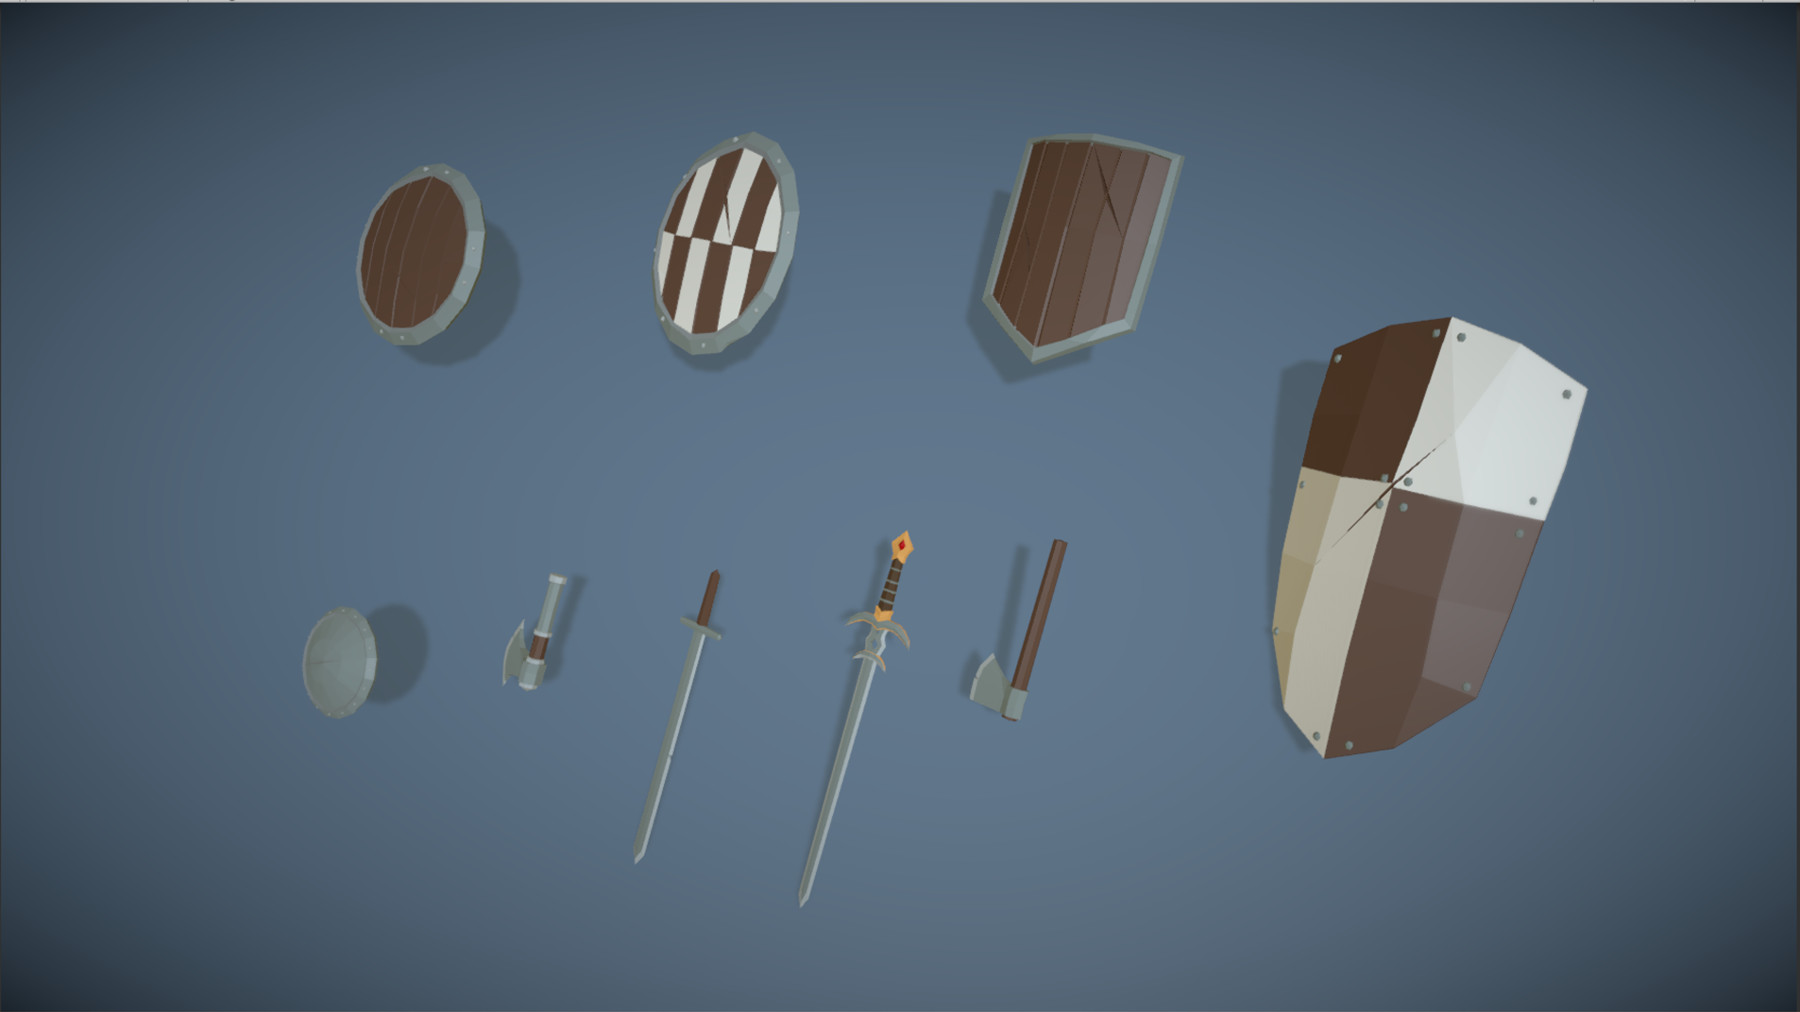 Pt medieval lowpoly characters weapons 02